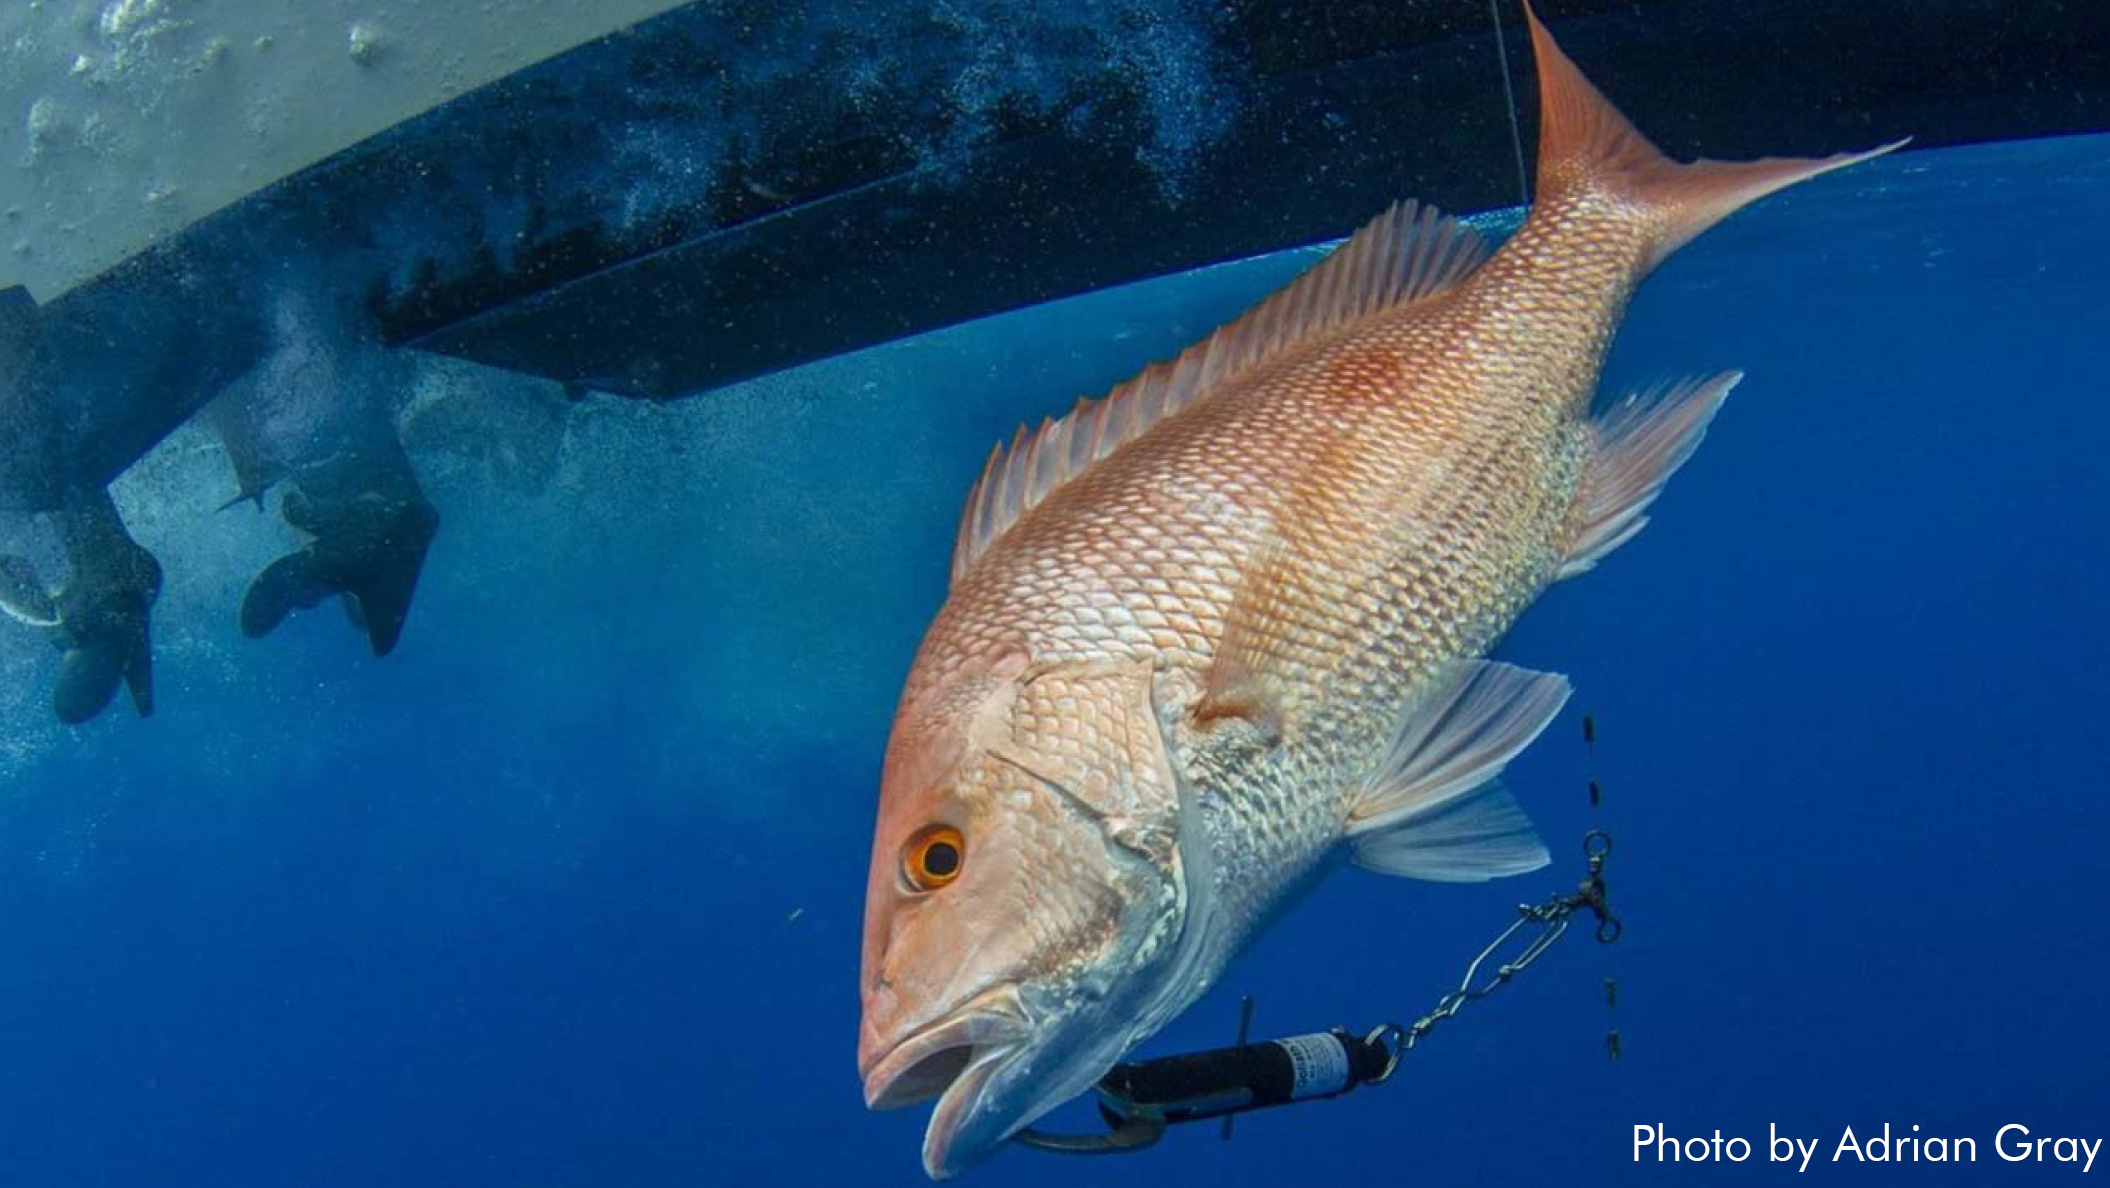 A red snapper is hooked to a descending device in this undated photo by Adrian Gray.